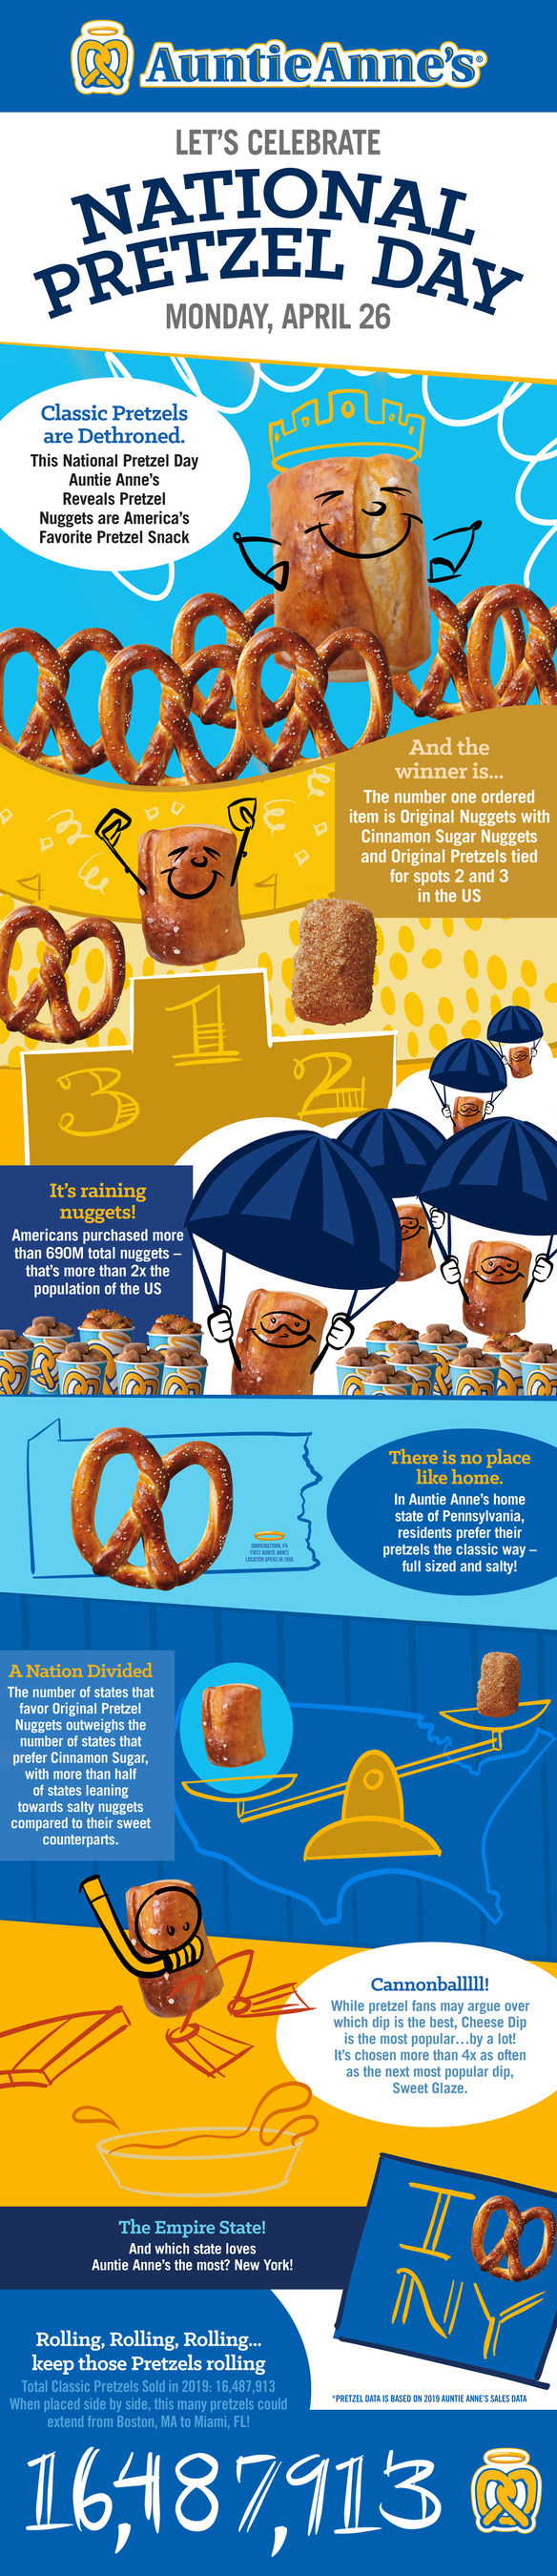 Auntie Anne's shares delicious data for National Pretzel Day